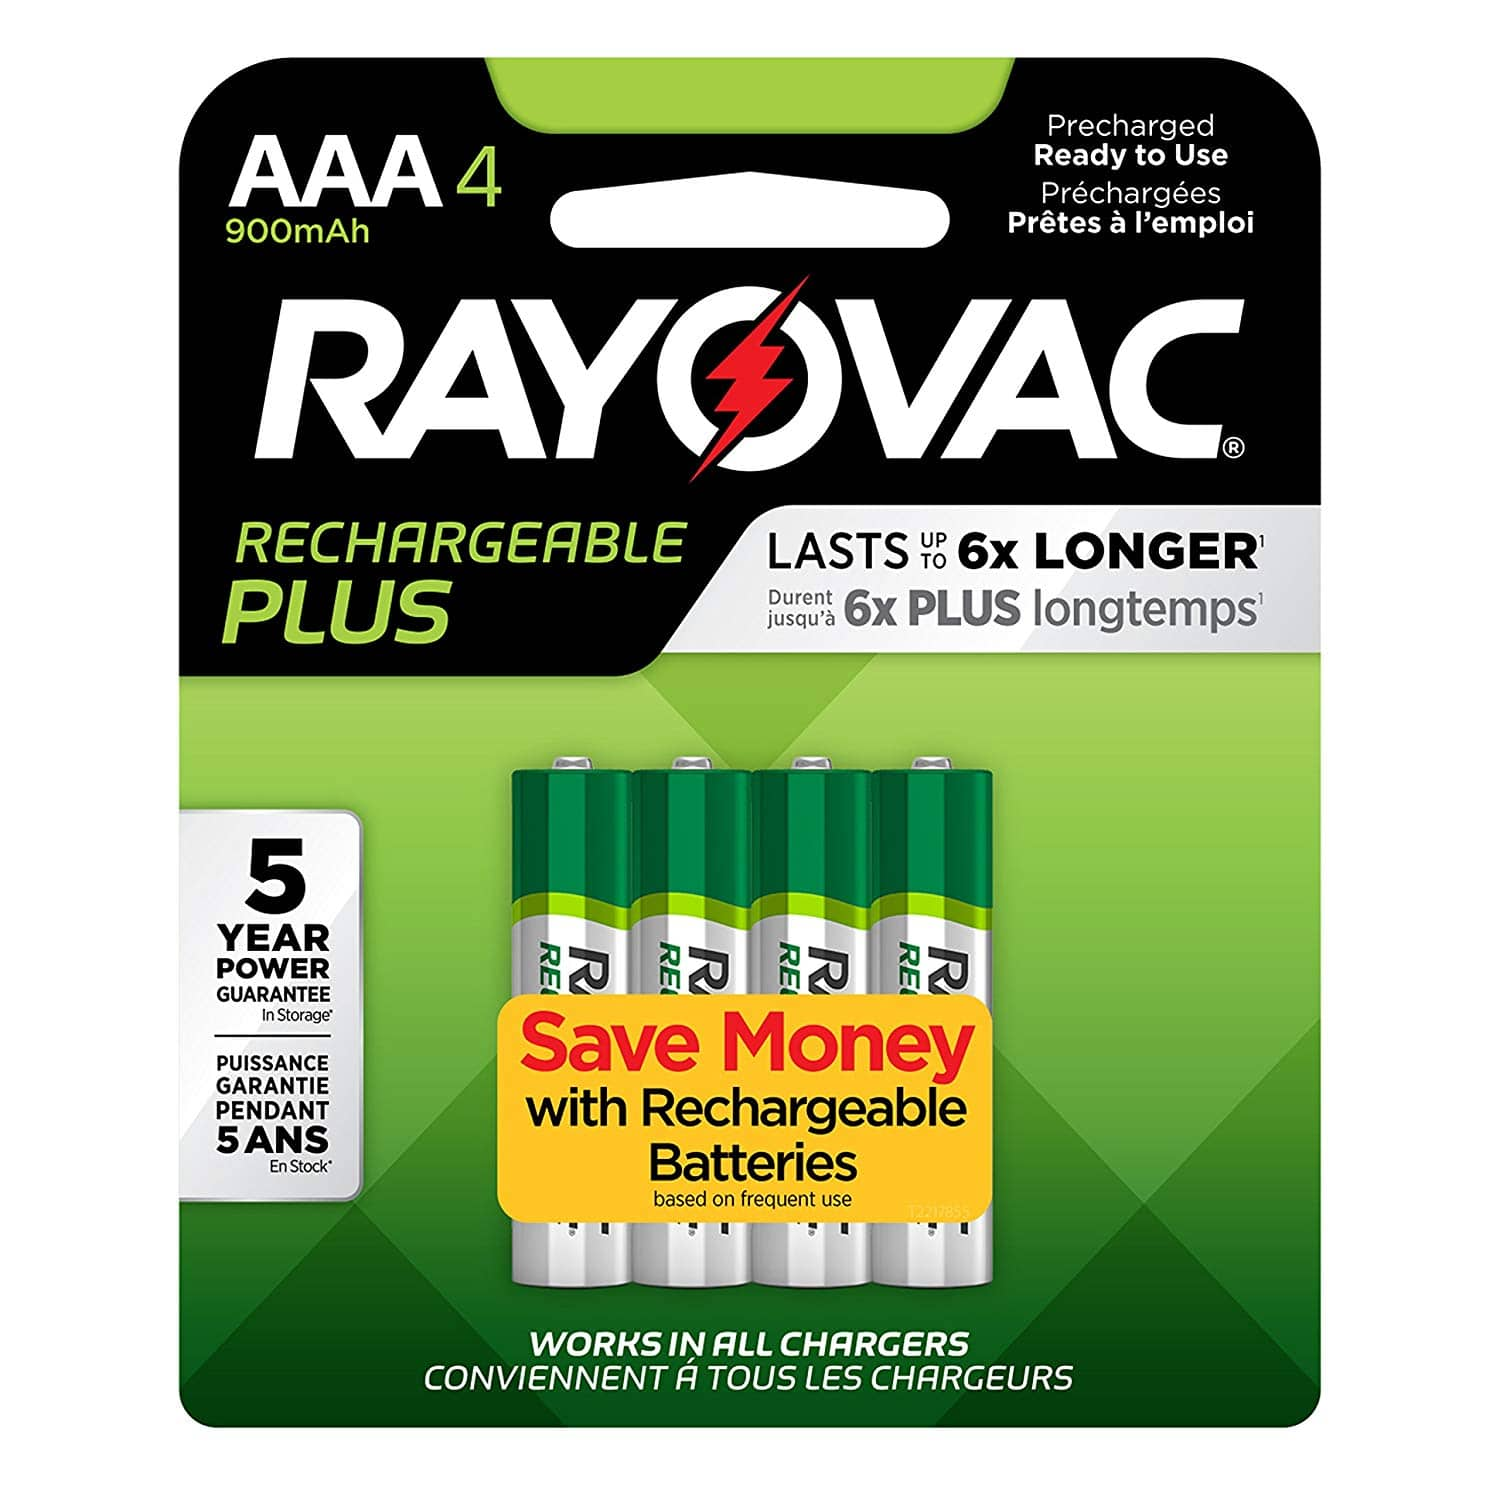 Rayovac Rechargeable AAA Batteries, High Capacity Rechargeable Plus AAA Batteries (4 Count) $5.45